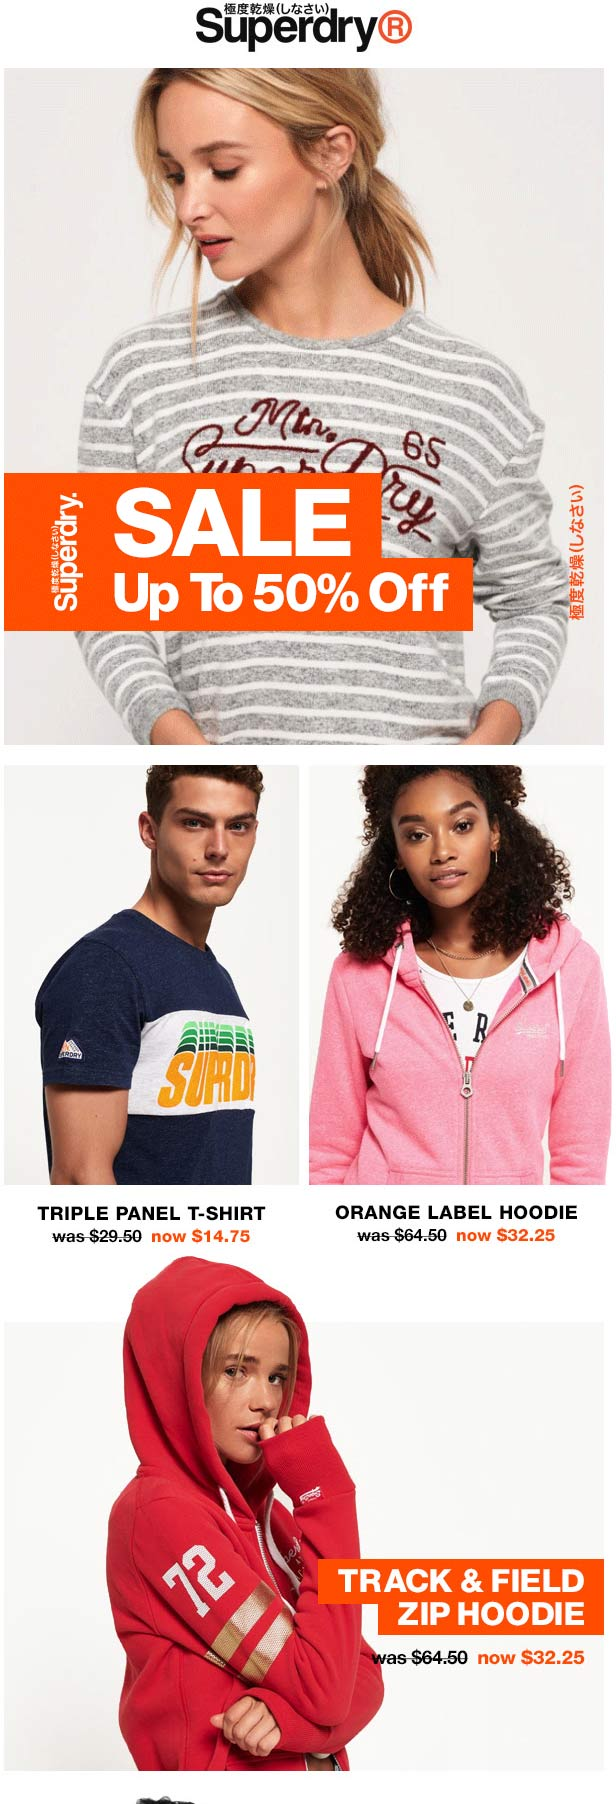 Superdry coupons & promo code for [April 2020]